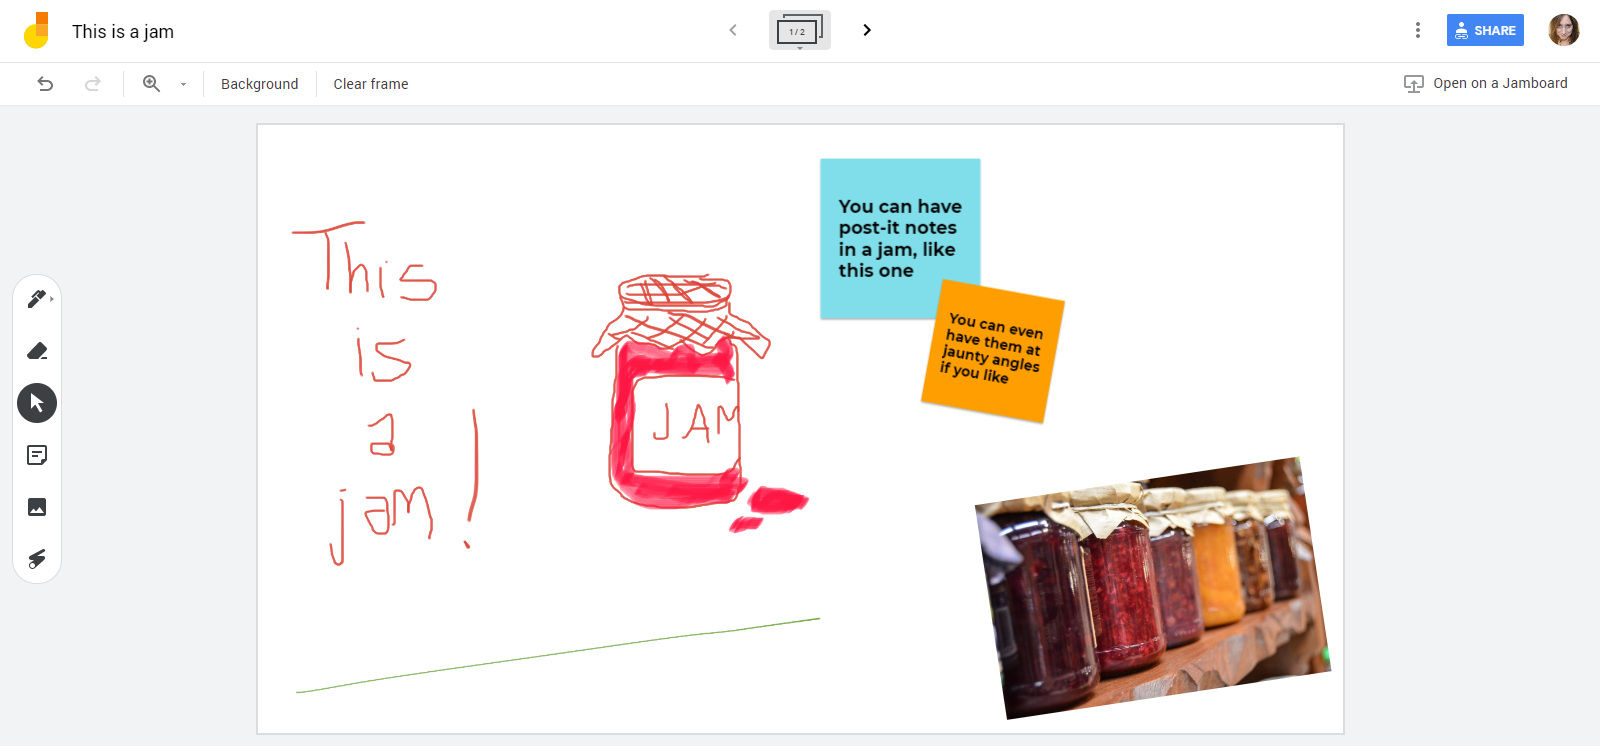 We've scribbled all over this jam and drawn a picture of some jam. We've also added some post-its and a photo.